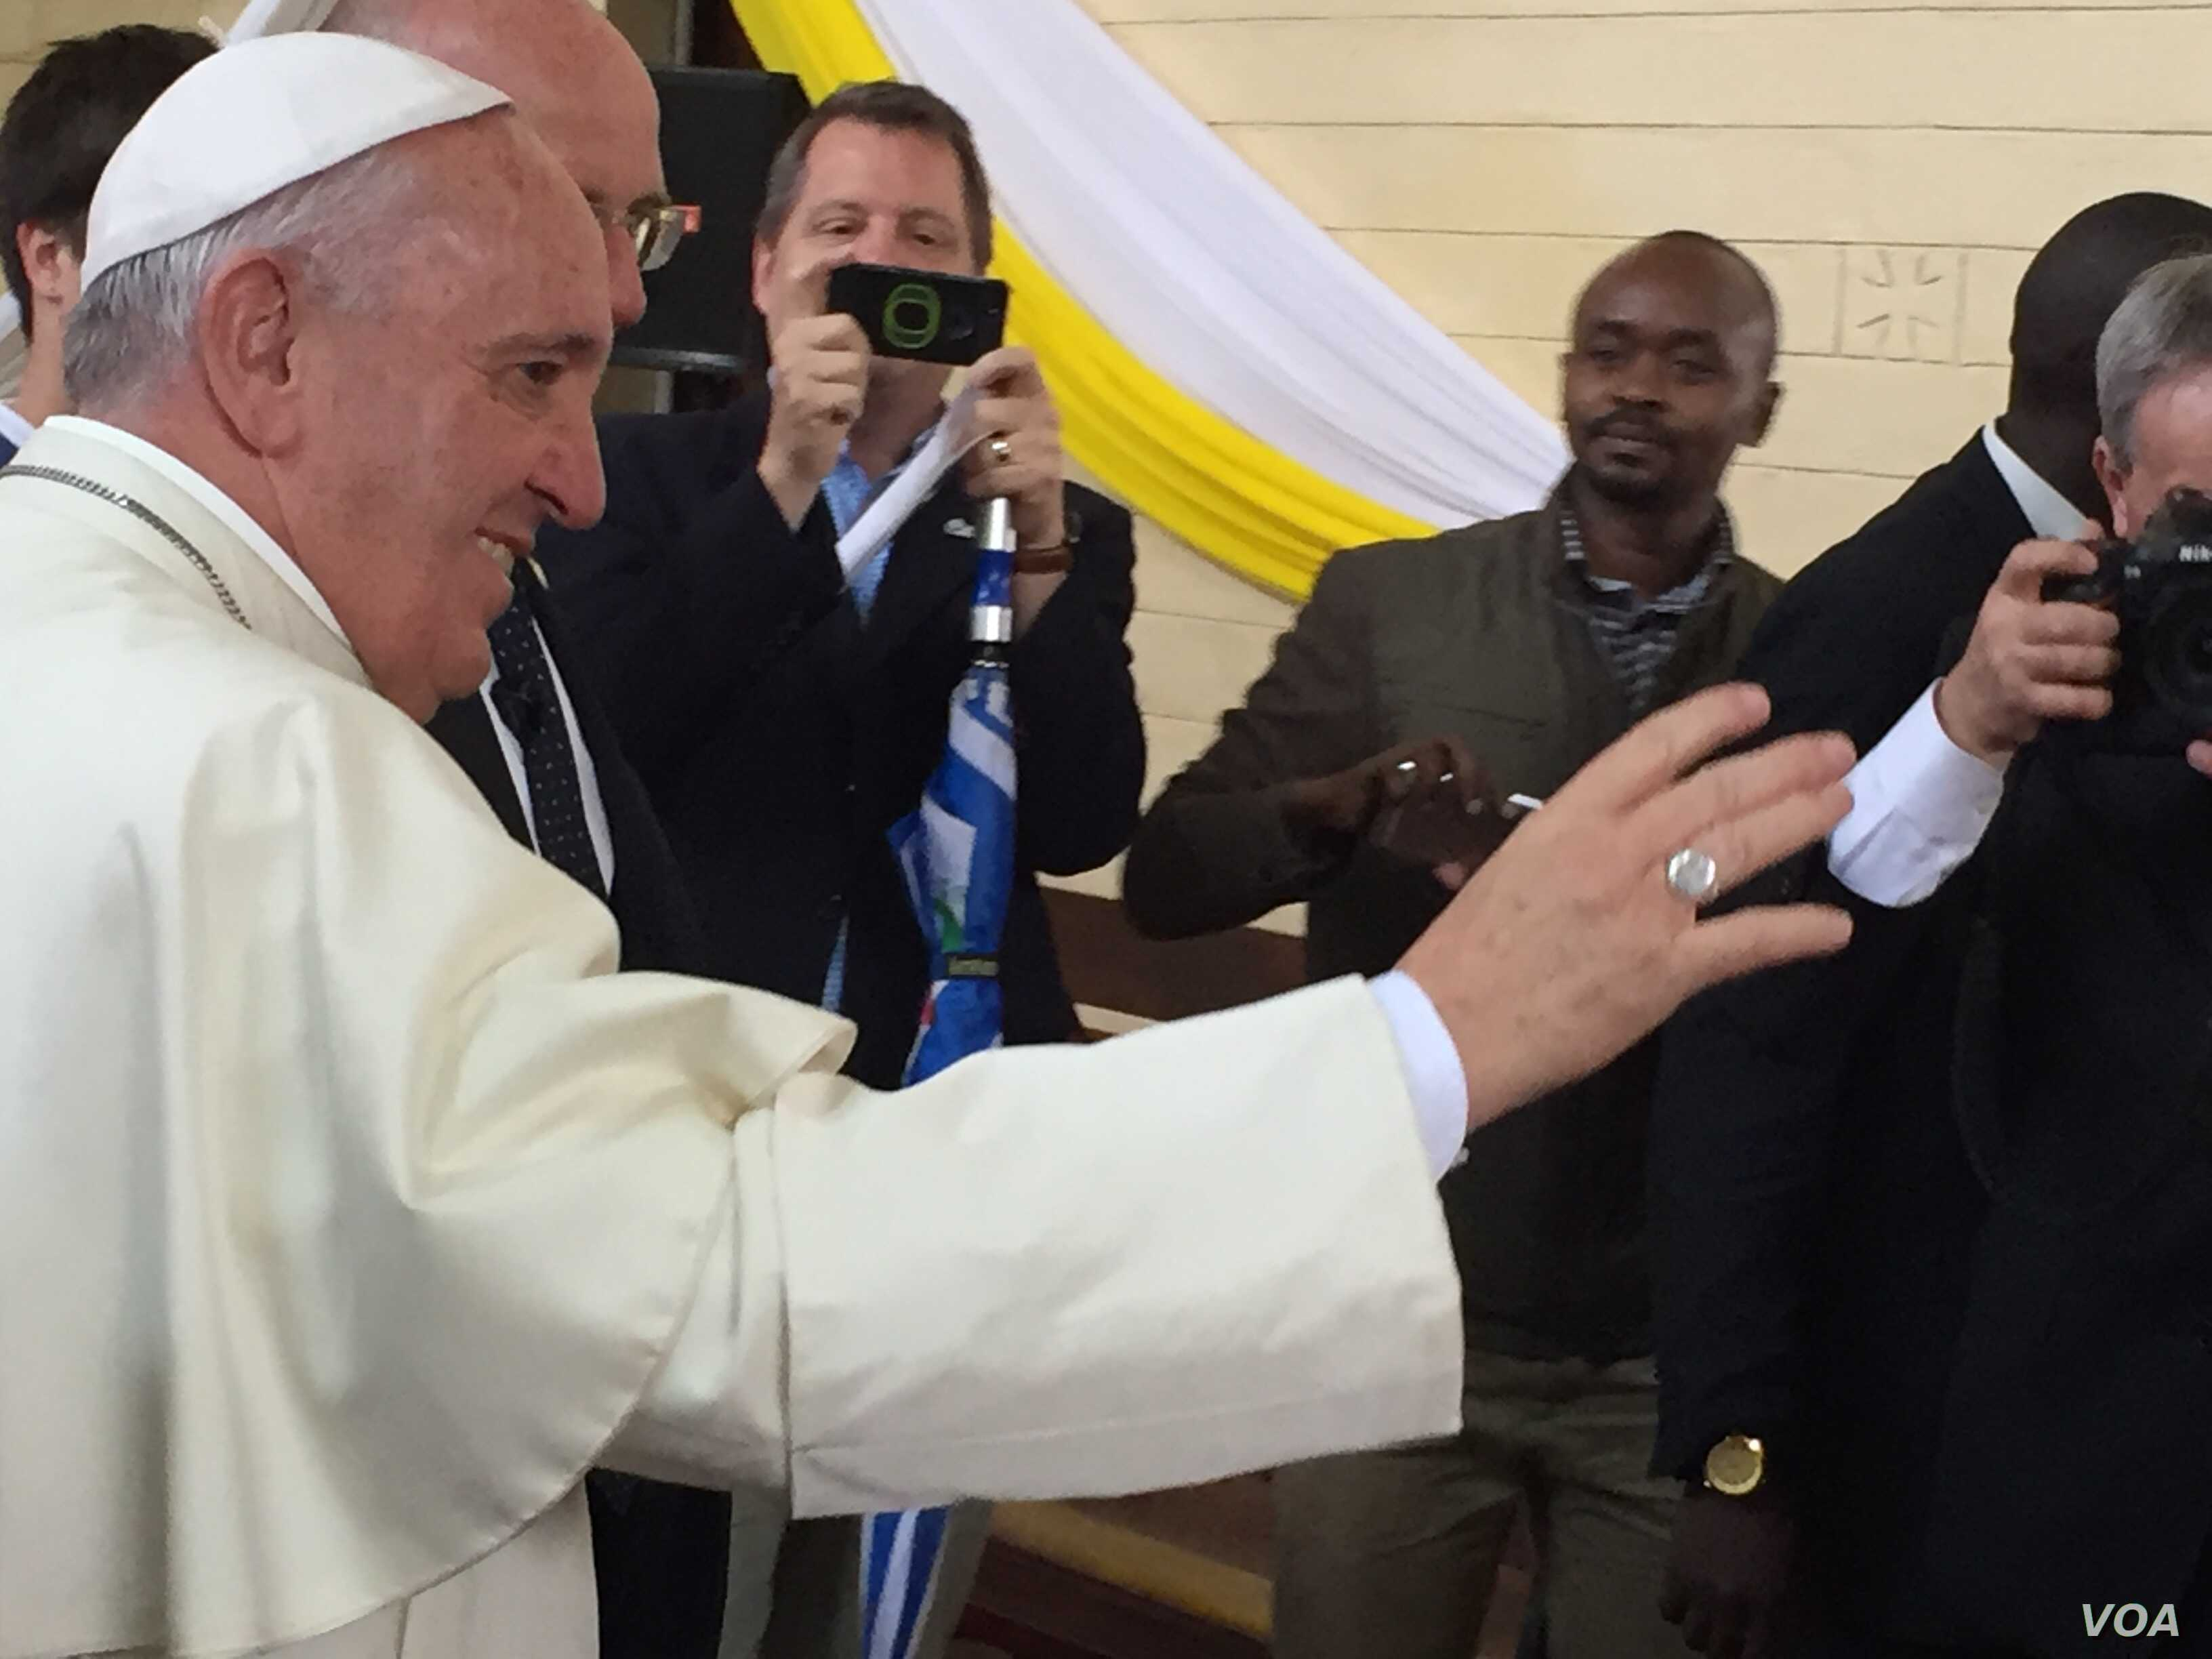 The Pope exiting the church after the event in Nairobi's Kangemi slum, Nov. 27, 2015. (J. Craig/VOA)